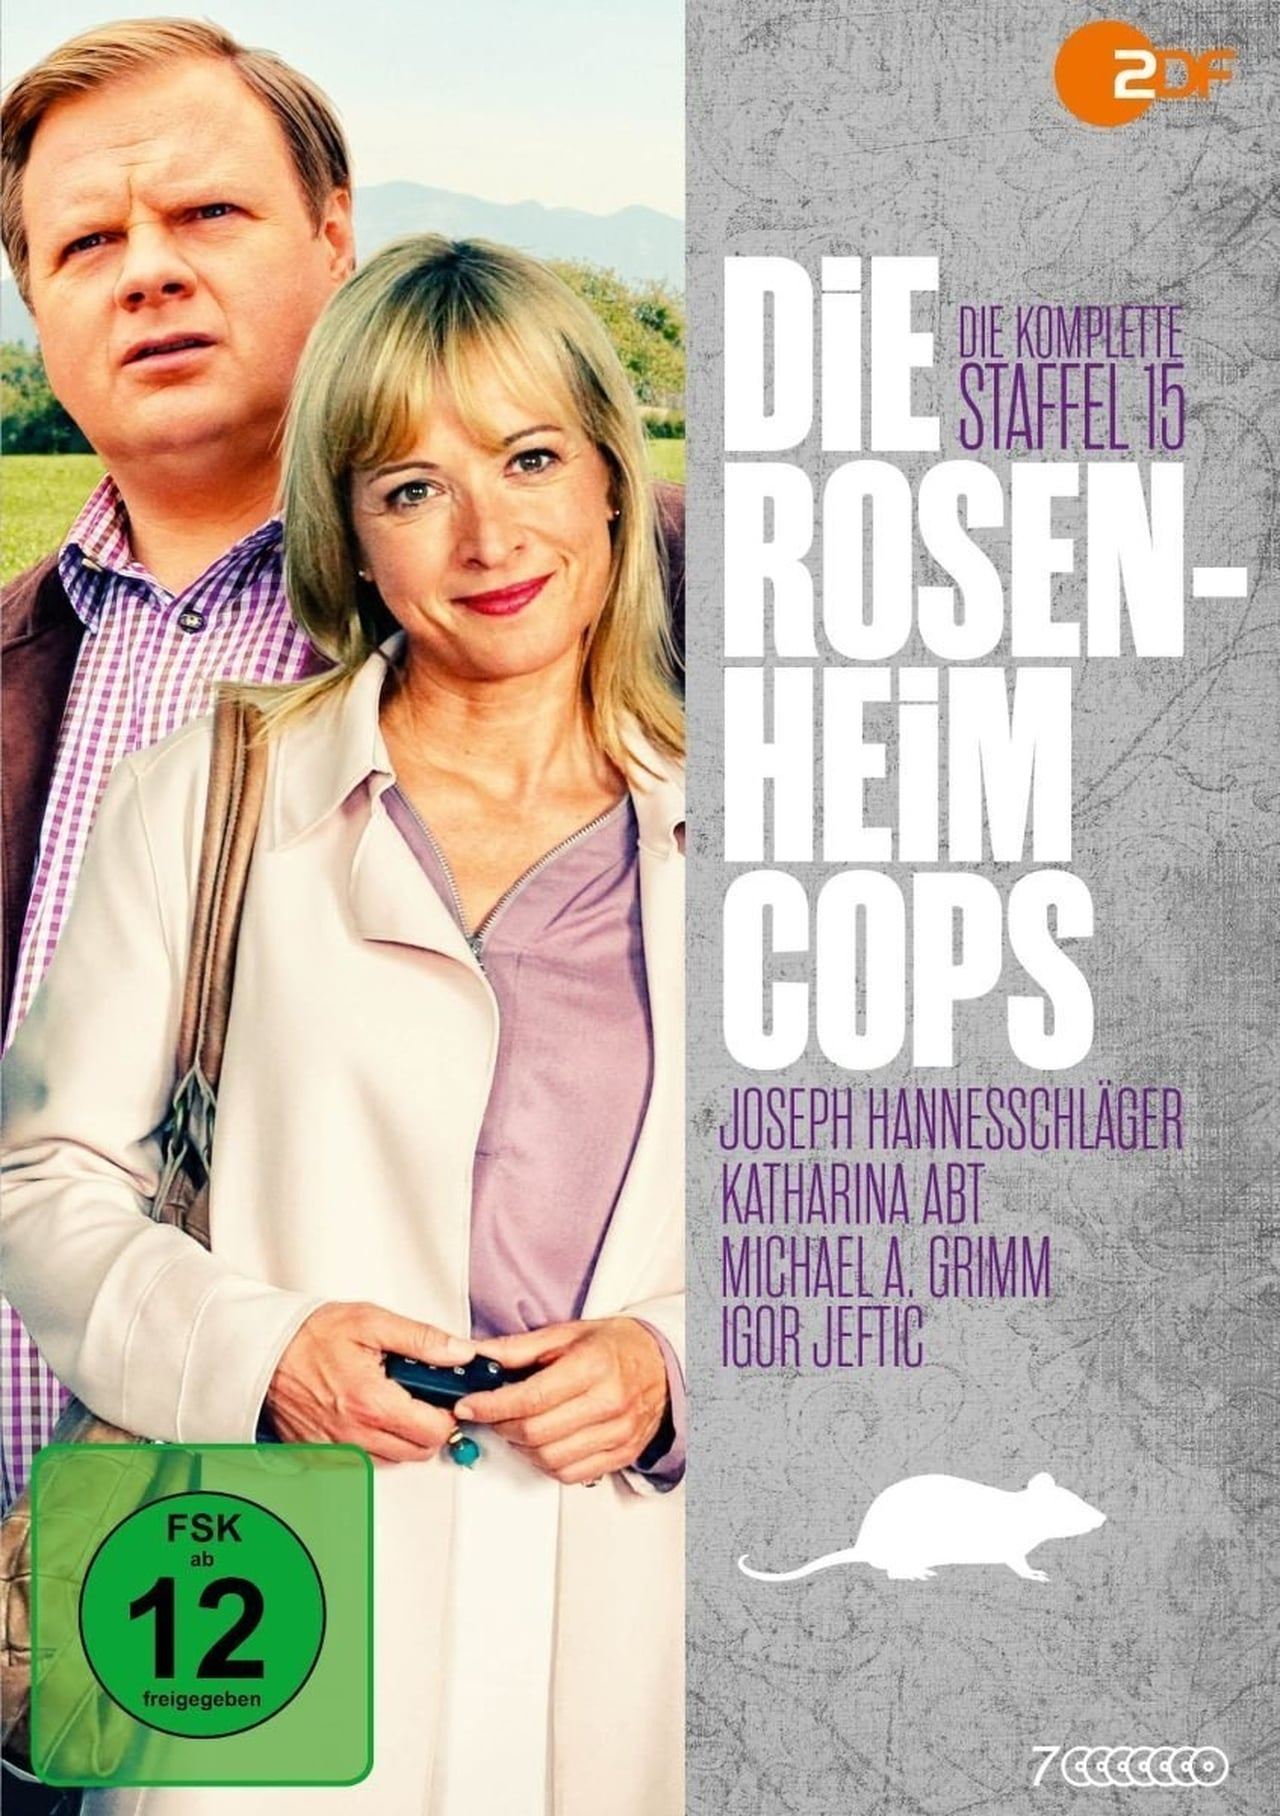 The Rosenheim Cops Season 15 (2015) putlockers cafe